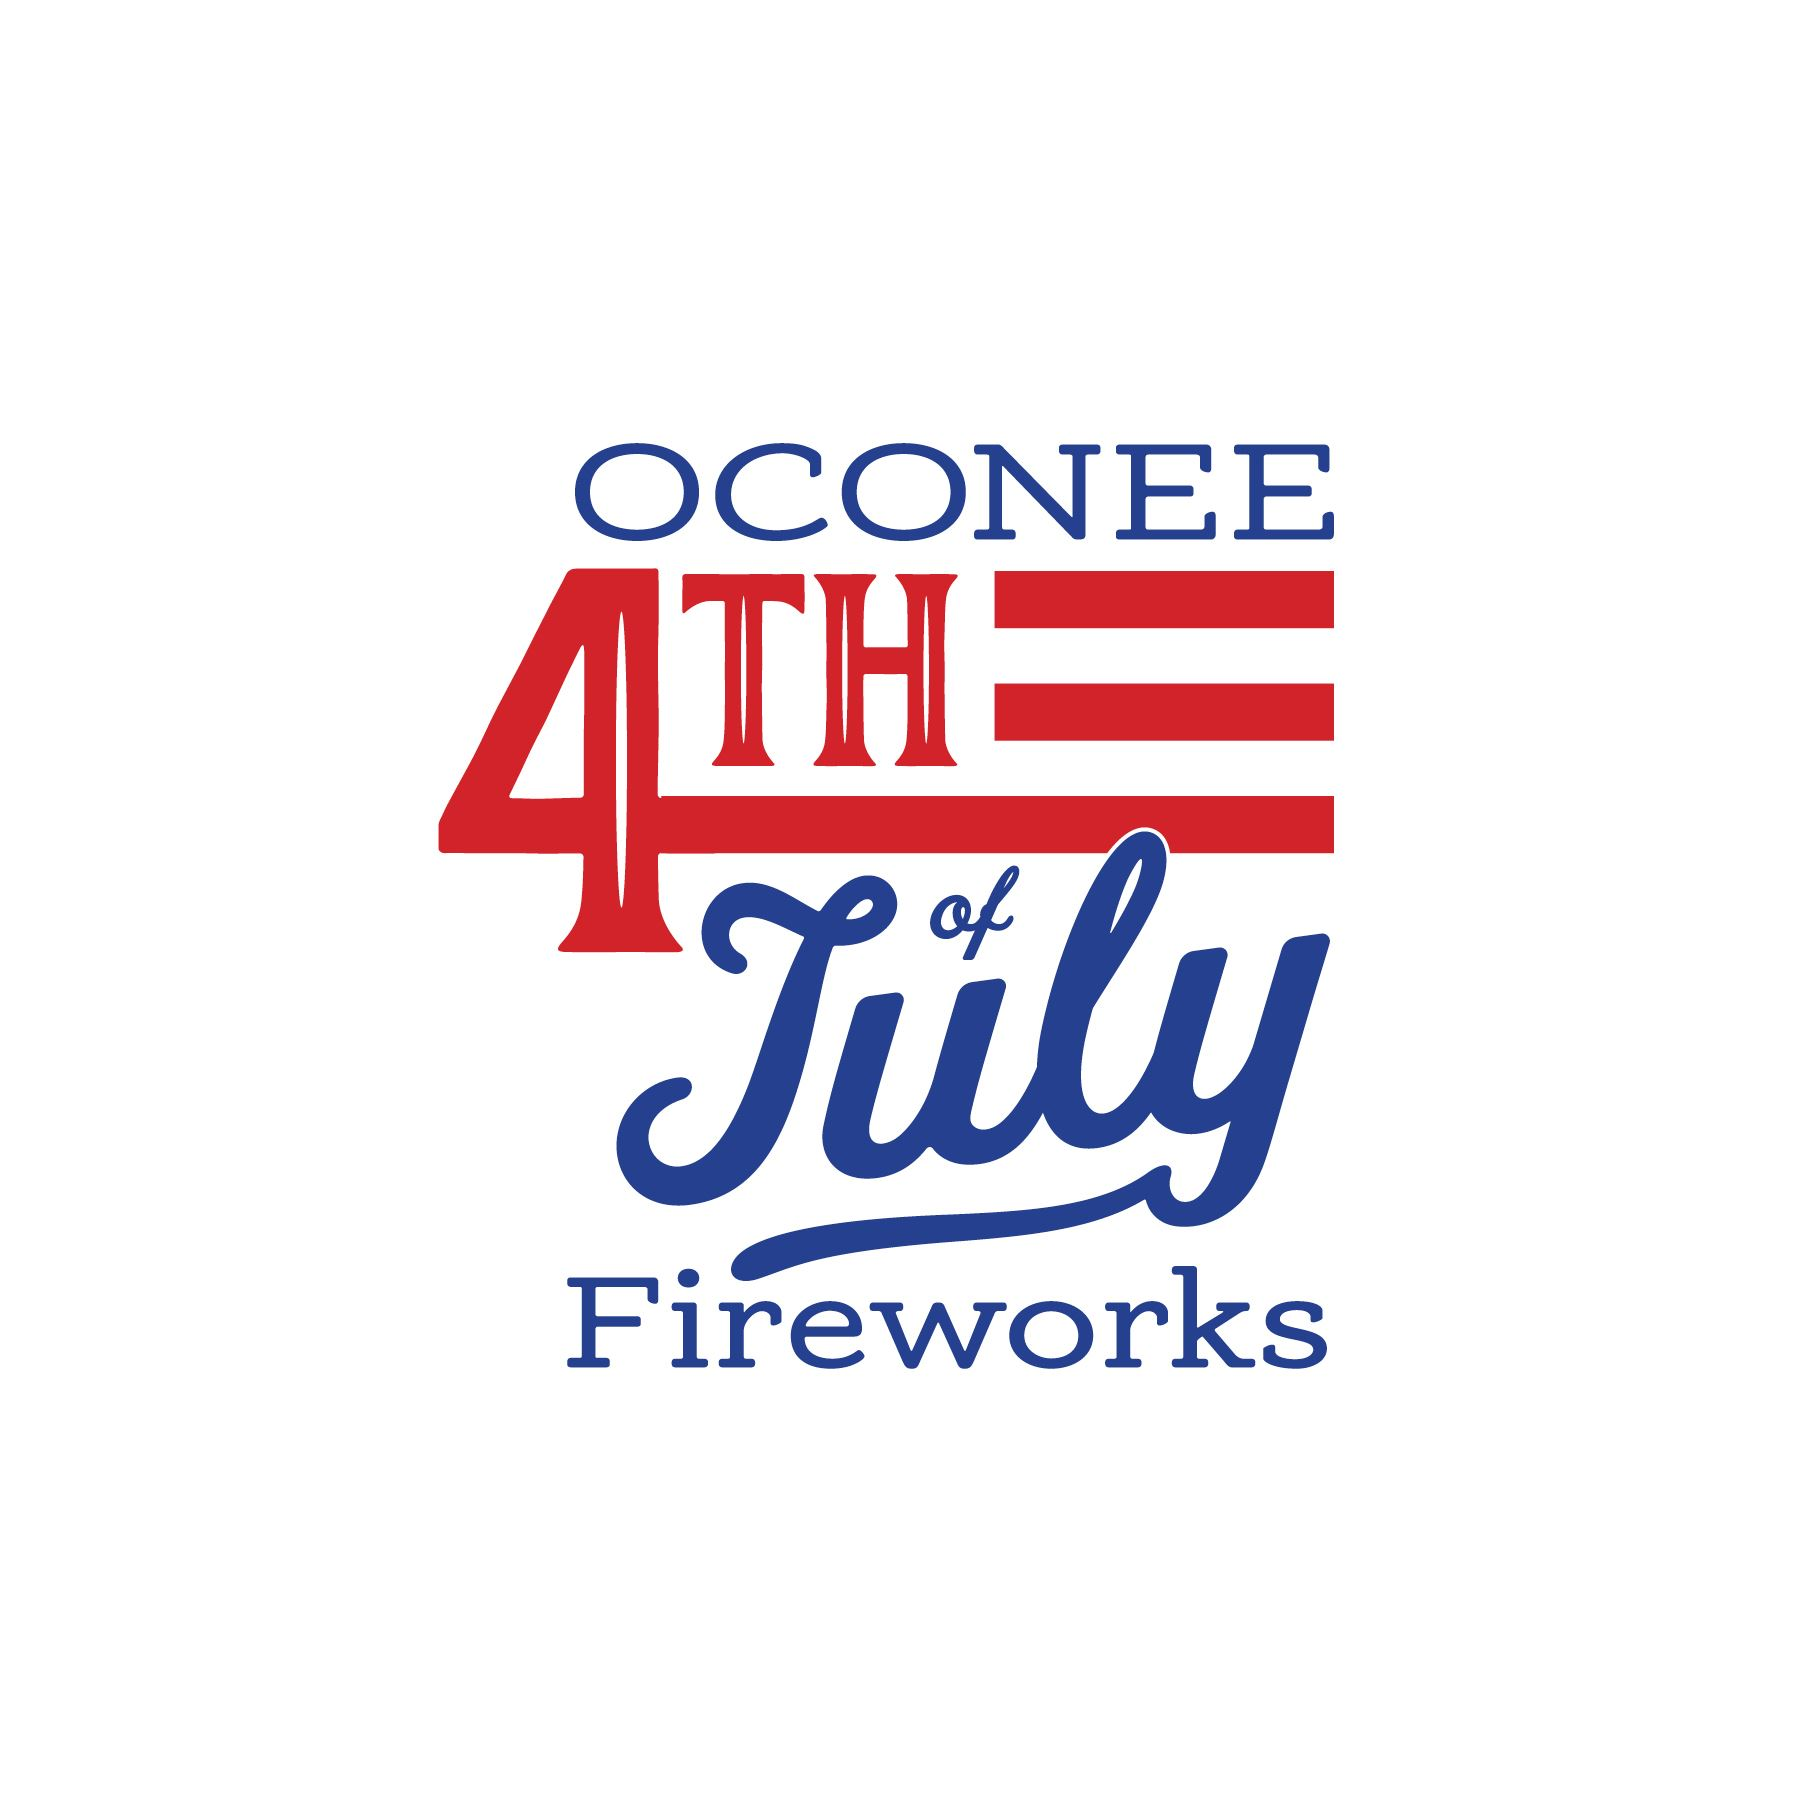 Oconee 4th of July Fireworks